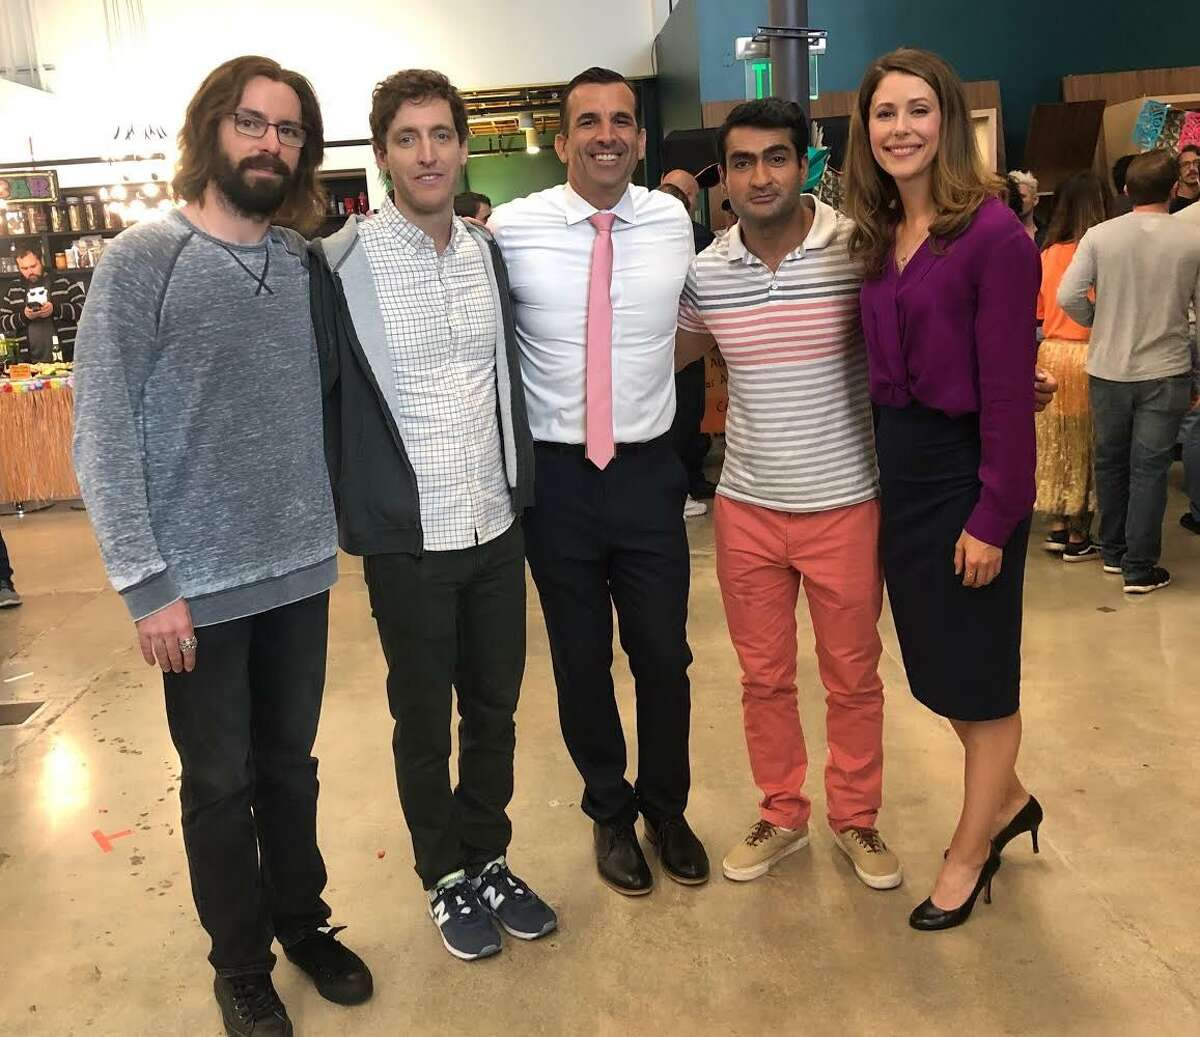 San Jose Mayor Sam Liccardo poses with the cast of the HBO show